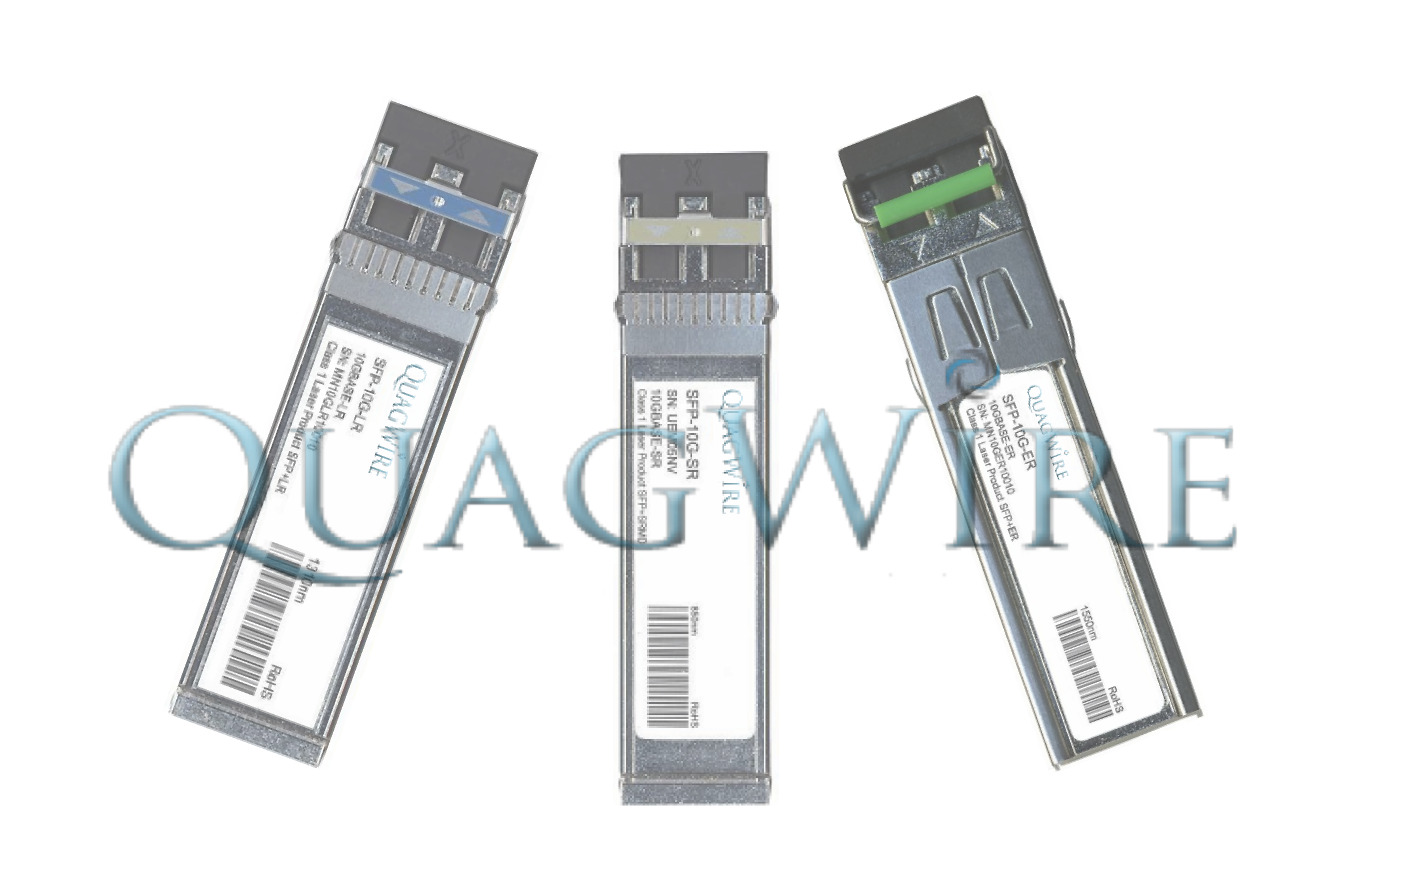 10G-SFPP-USR-8 Brocade Compatible SFP+ Transceiver (8 Pack)